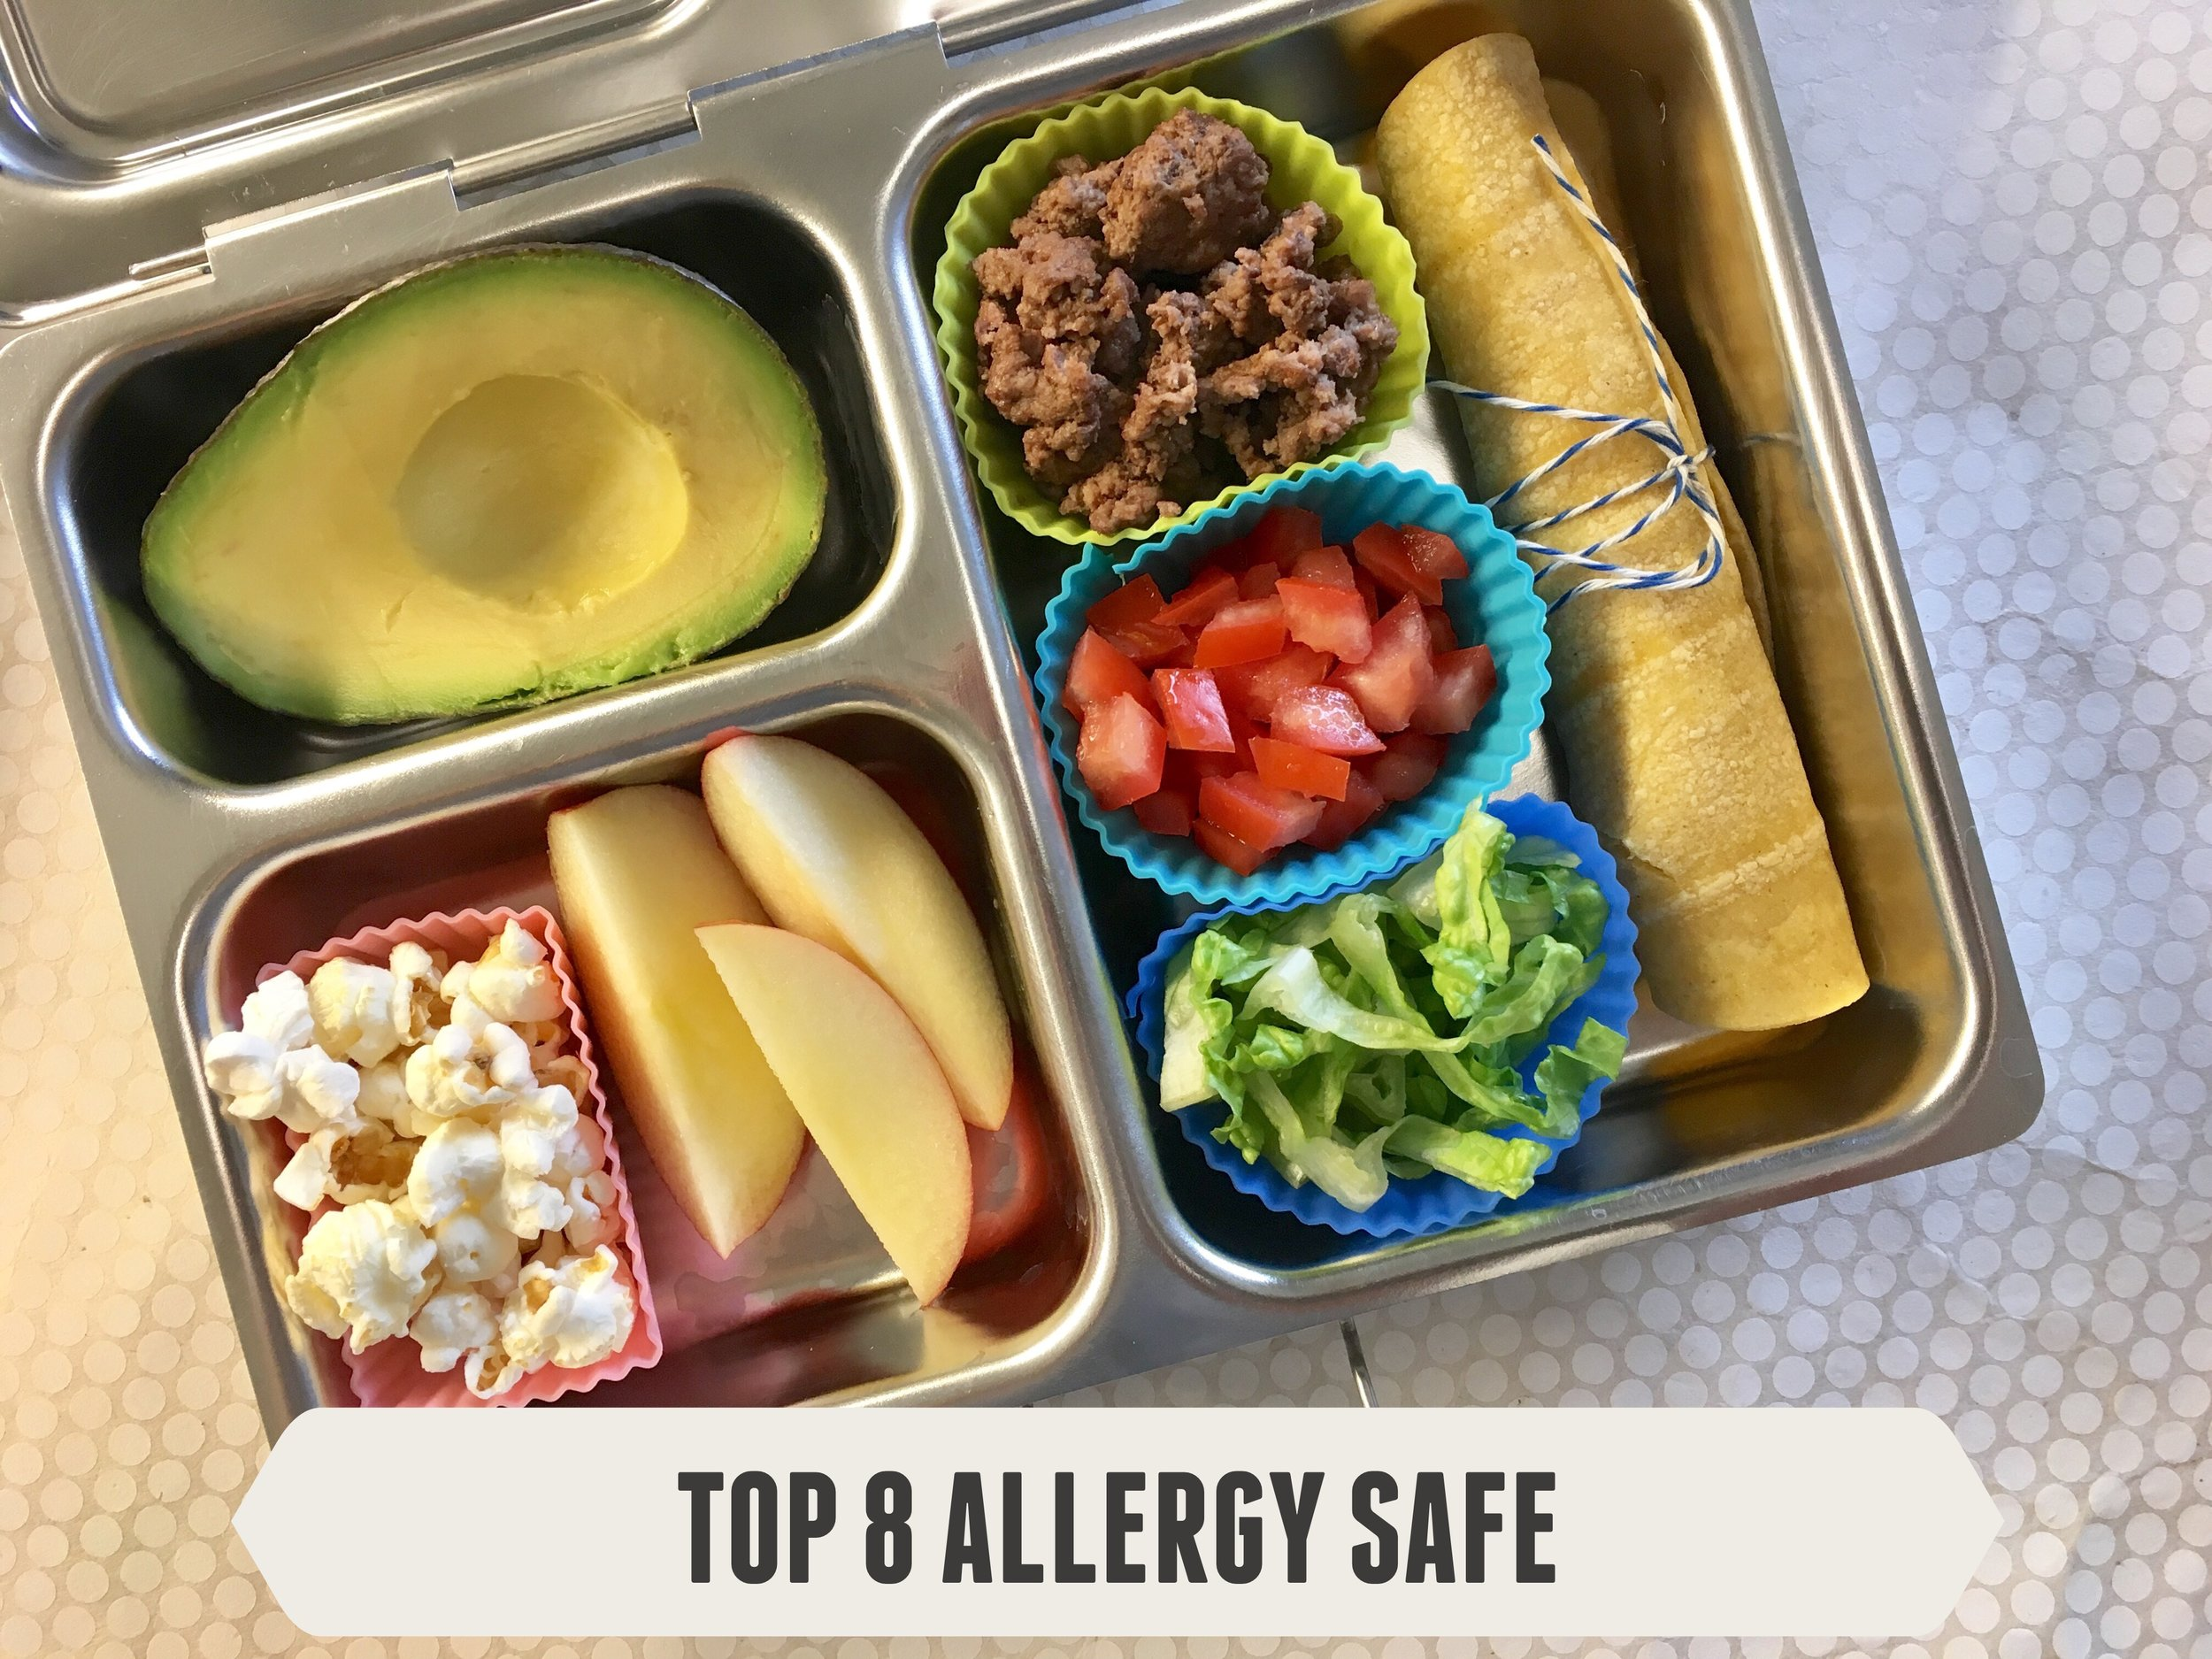 Top 8 Allergy Safe Lunch #2